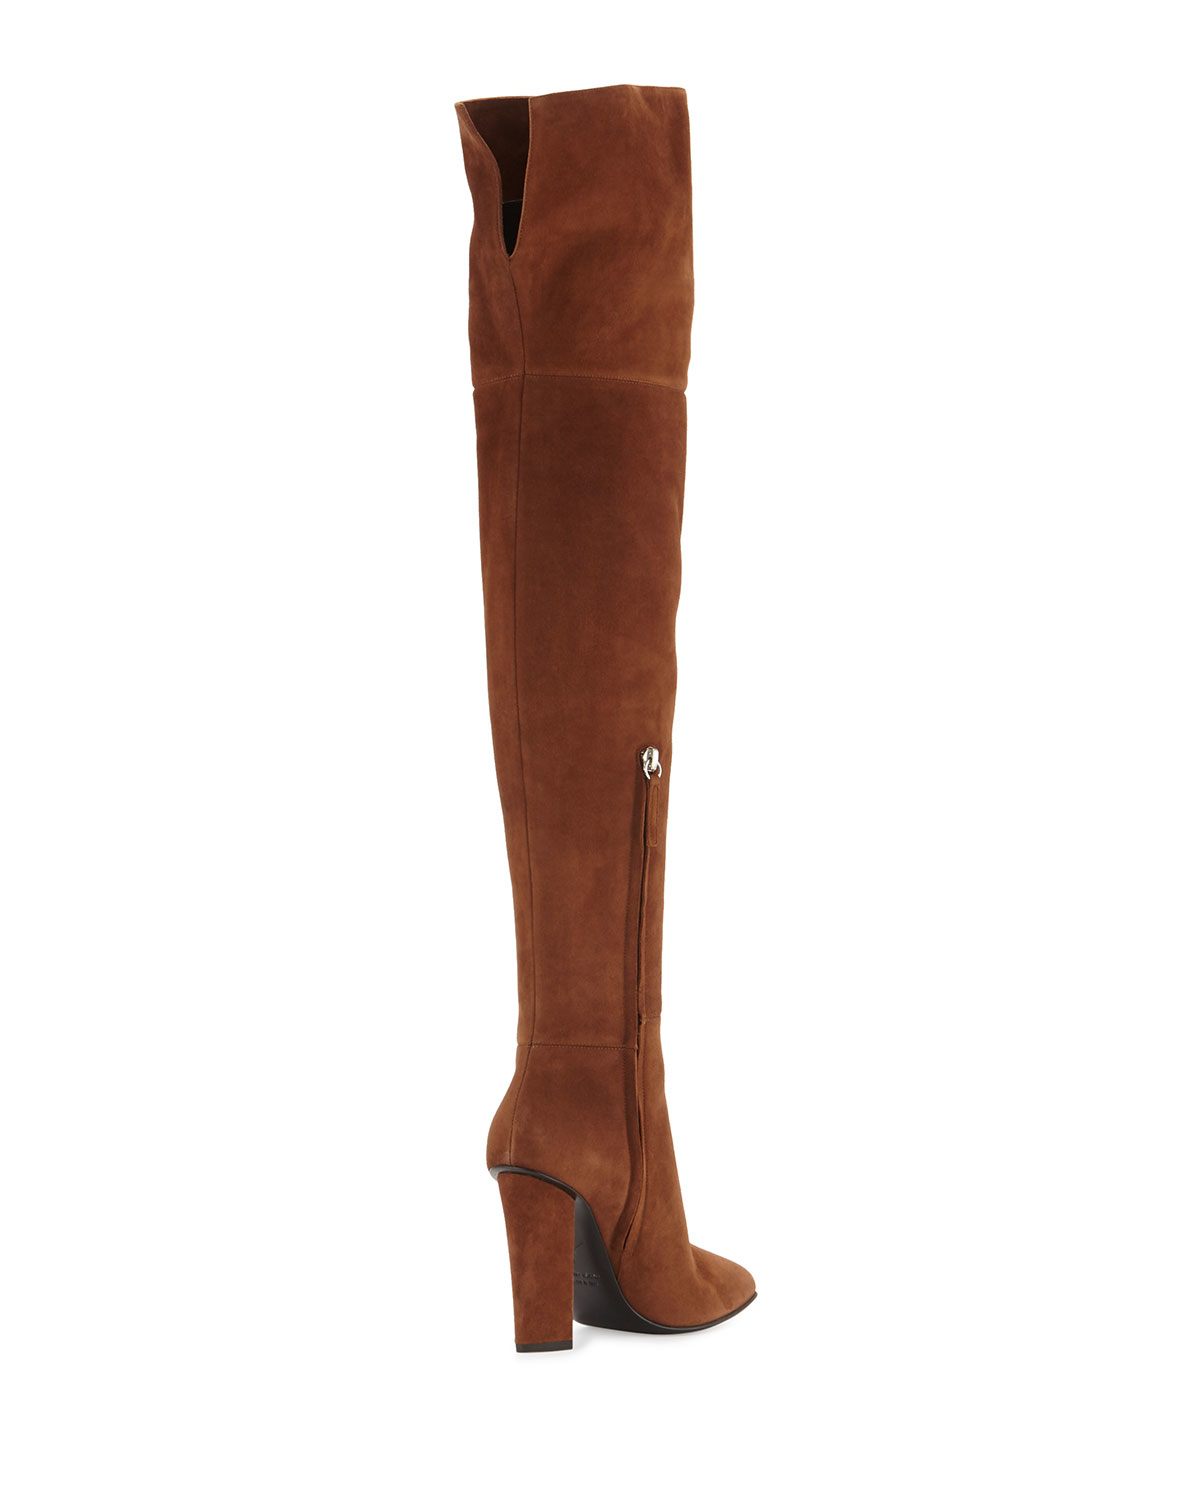 eb50c7e8eef Lyst - Giuseppe Zanotti Alabama Suede Over-the-knee Boot in Brown